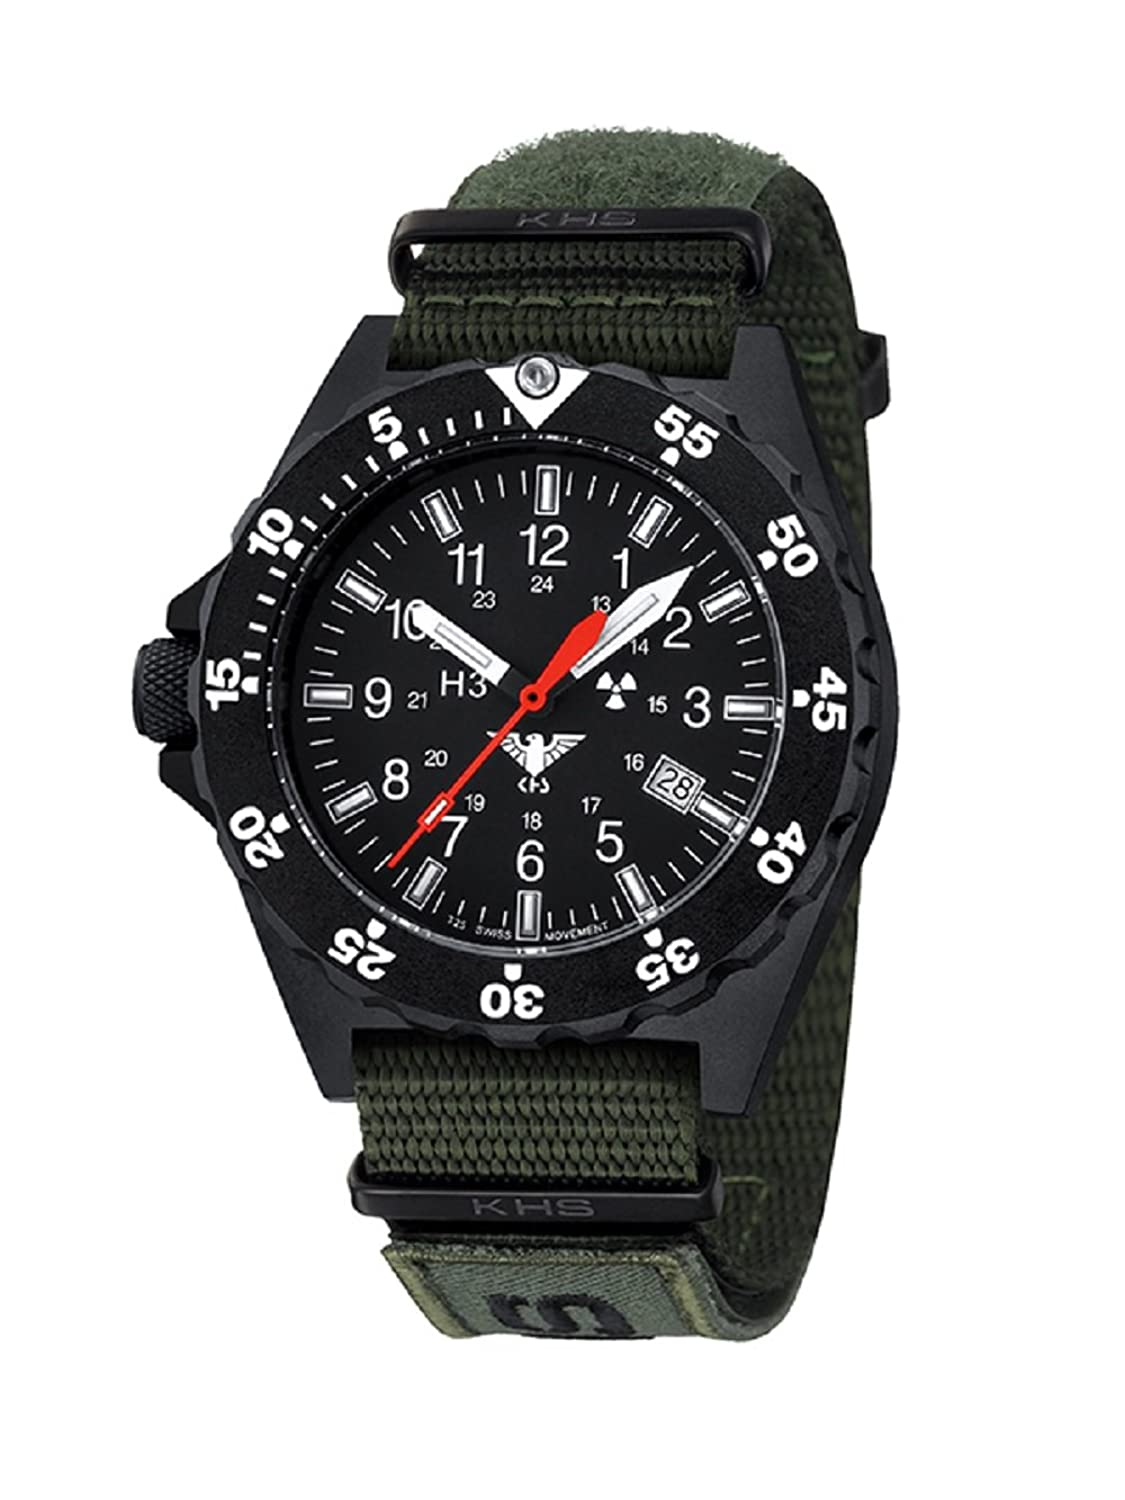 KHS Shooter KHS.SH.NXTO1 Natoband oliv inkl. Watch-Glass-Protection Schutzfolie